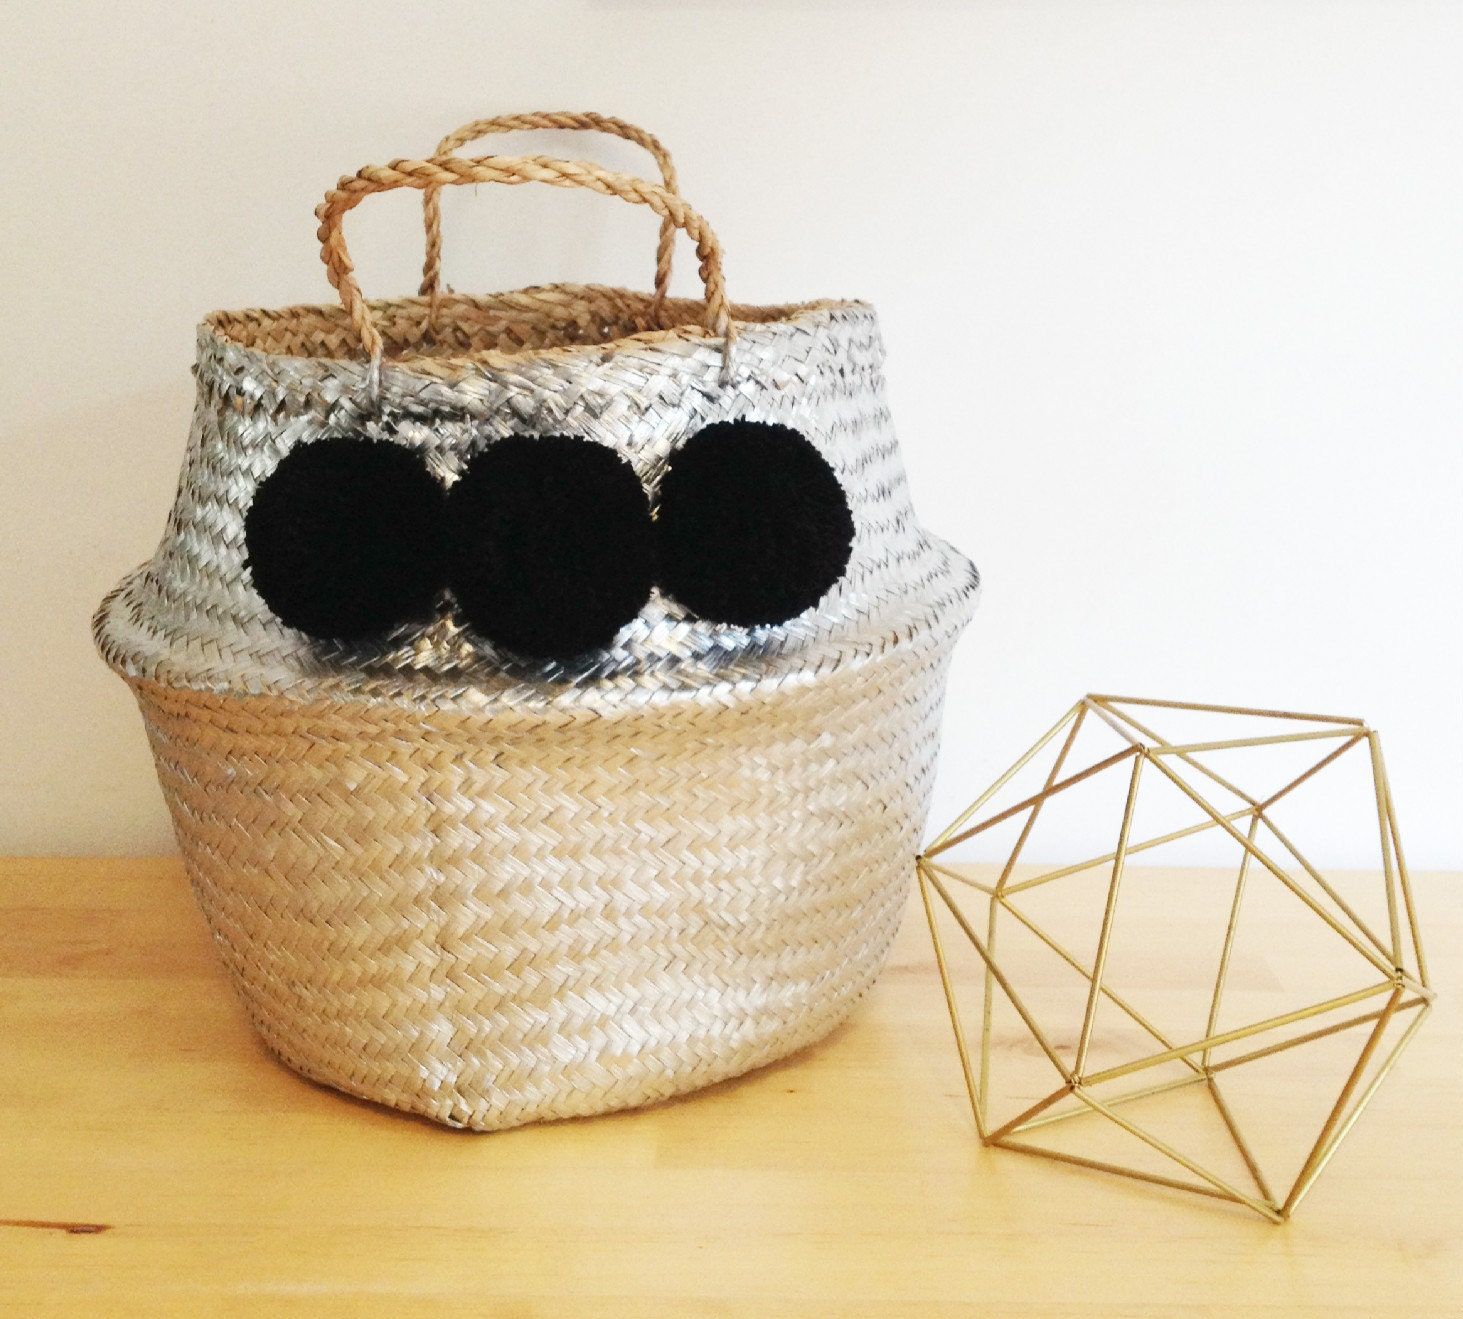 pom pom silver black sea grass belly basket panier boule. Black Bedroom Furniture Sets. Home Design Ideas